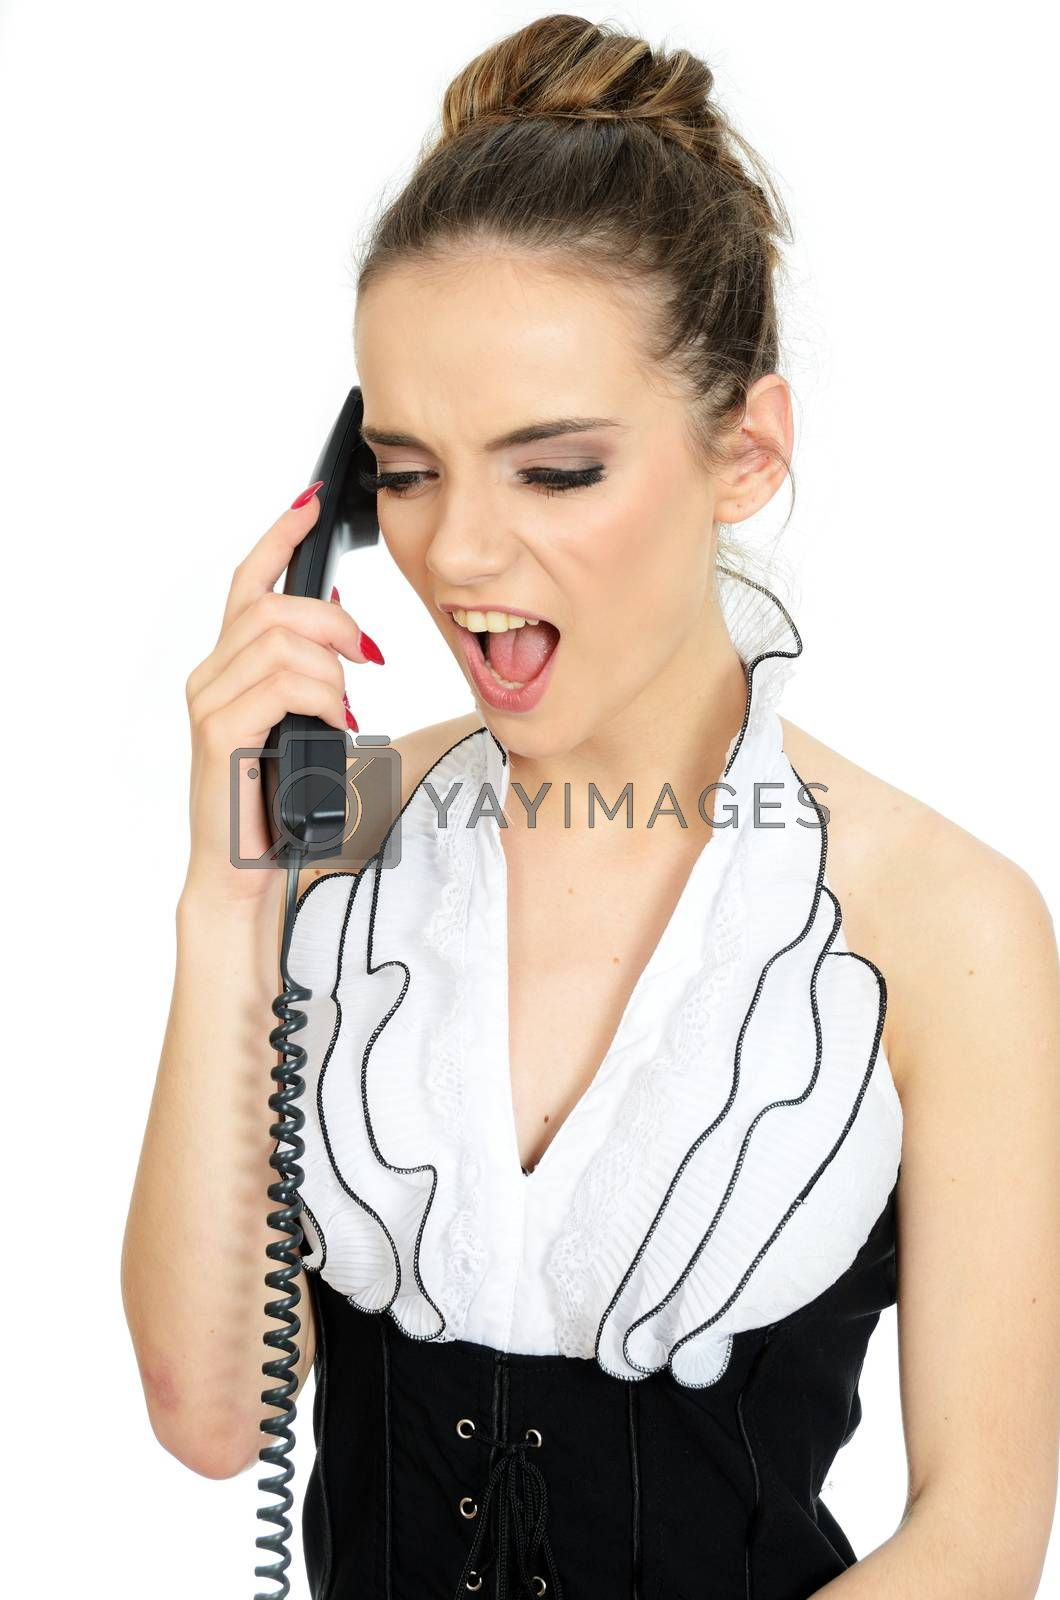 Young office lady screams on phone. Female model holds cable phone in her hand. Angry face expression.